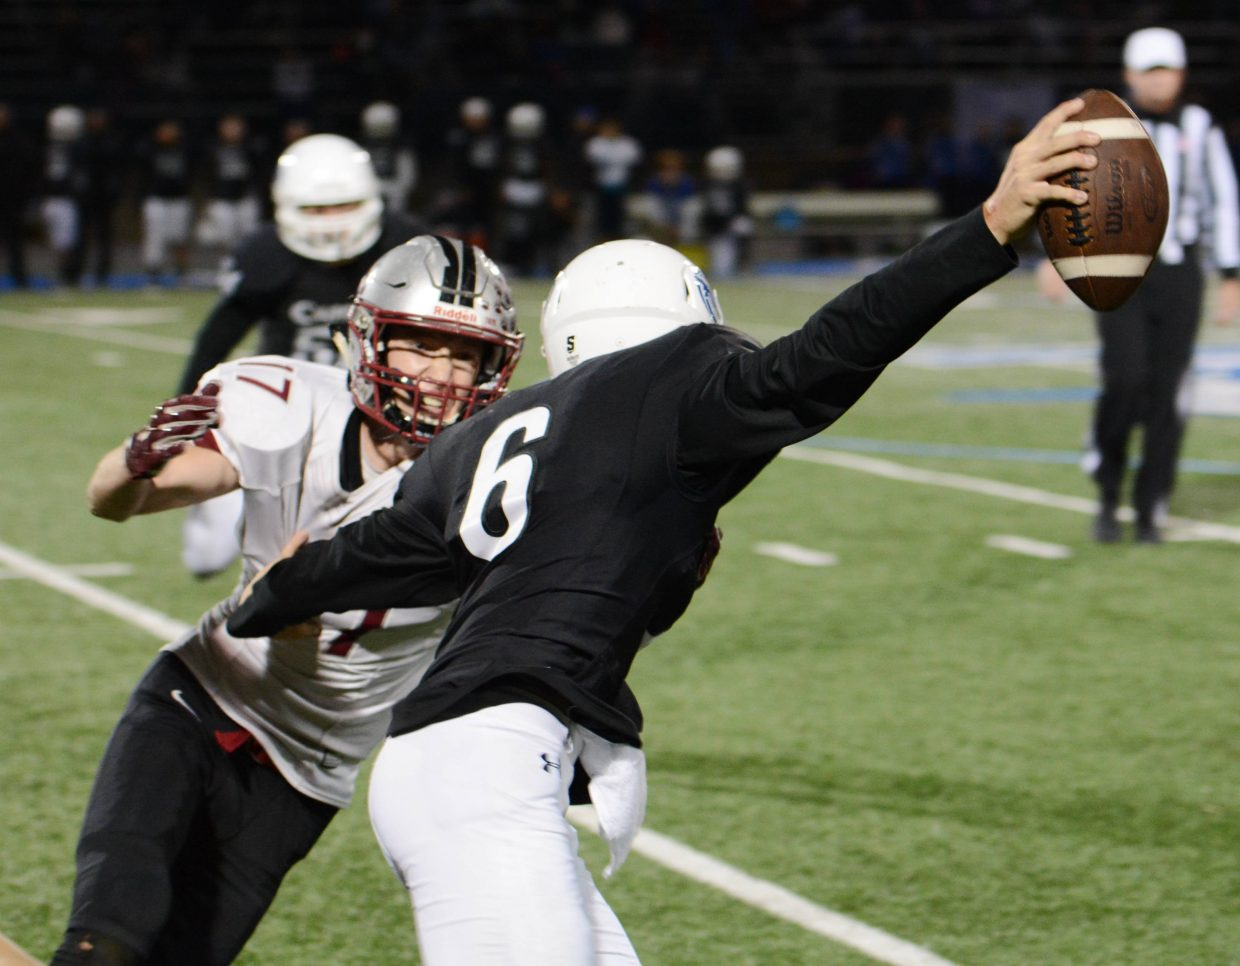 Bear River's Jake Leonard closes in on Capital Christian's quarterback during a playoff game Thursday.